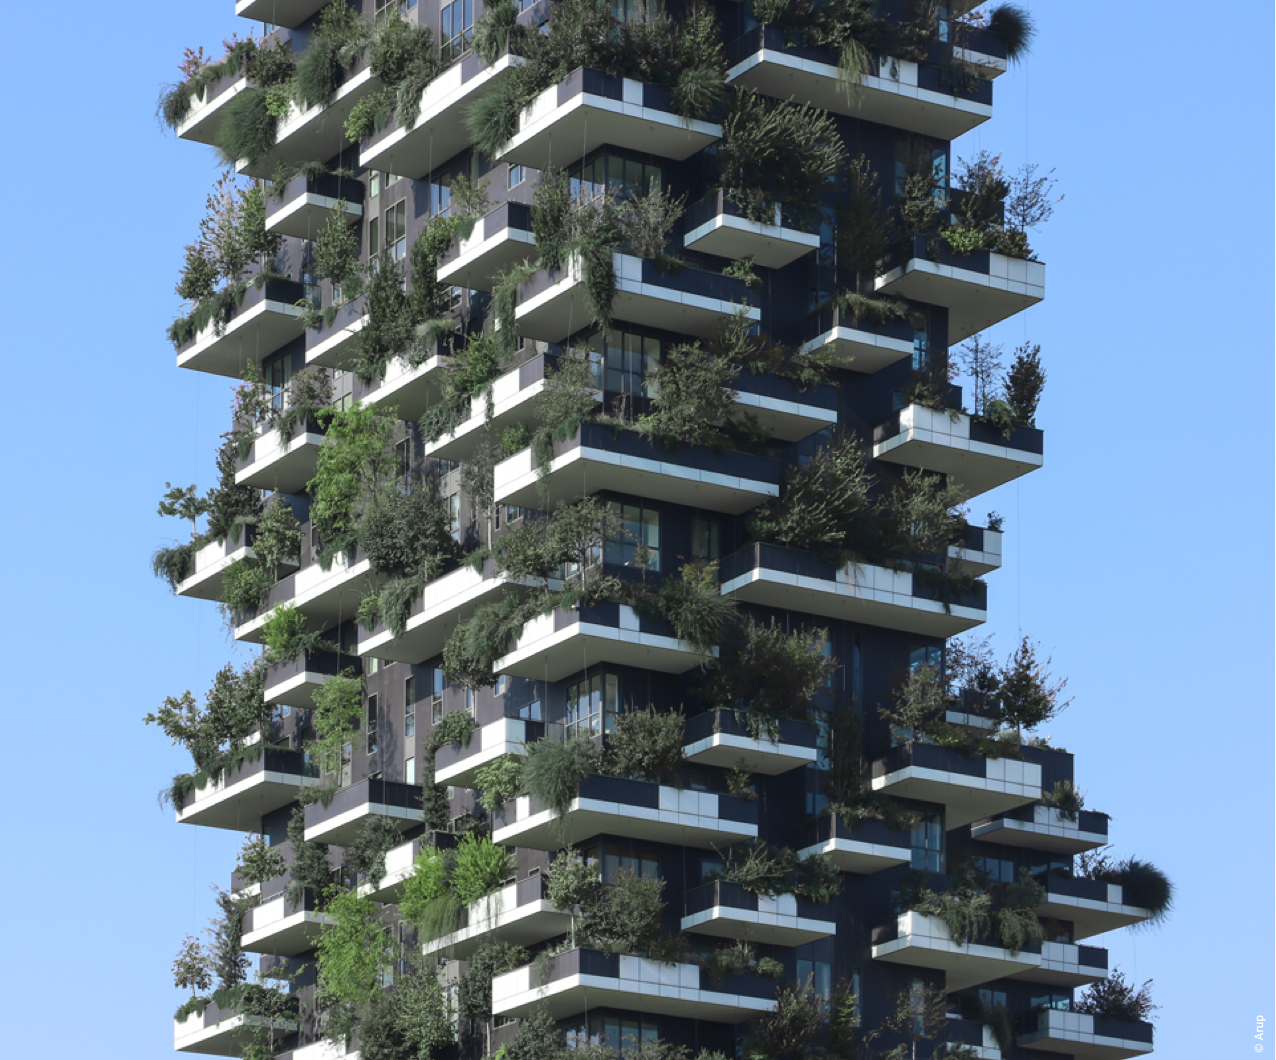 Bosco verticale estate